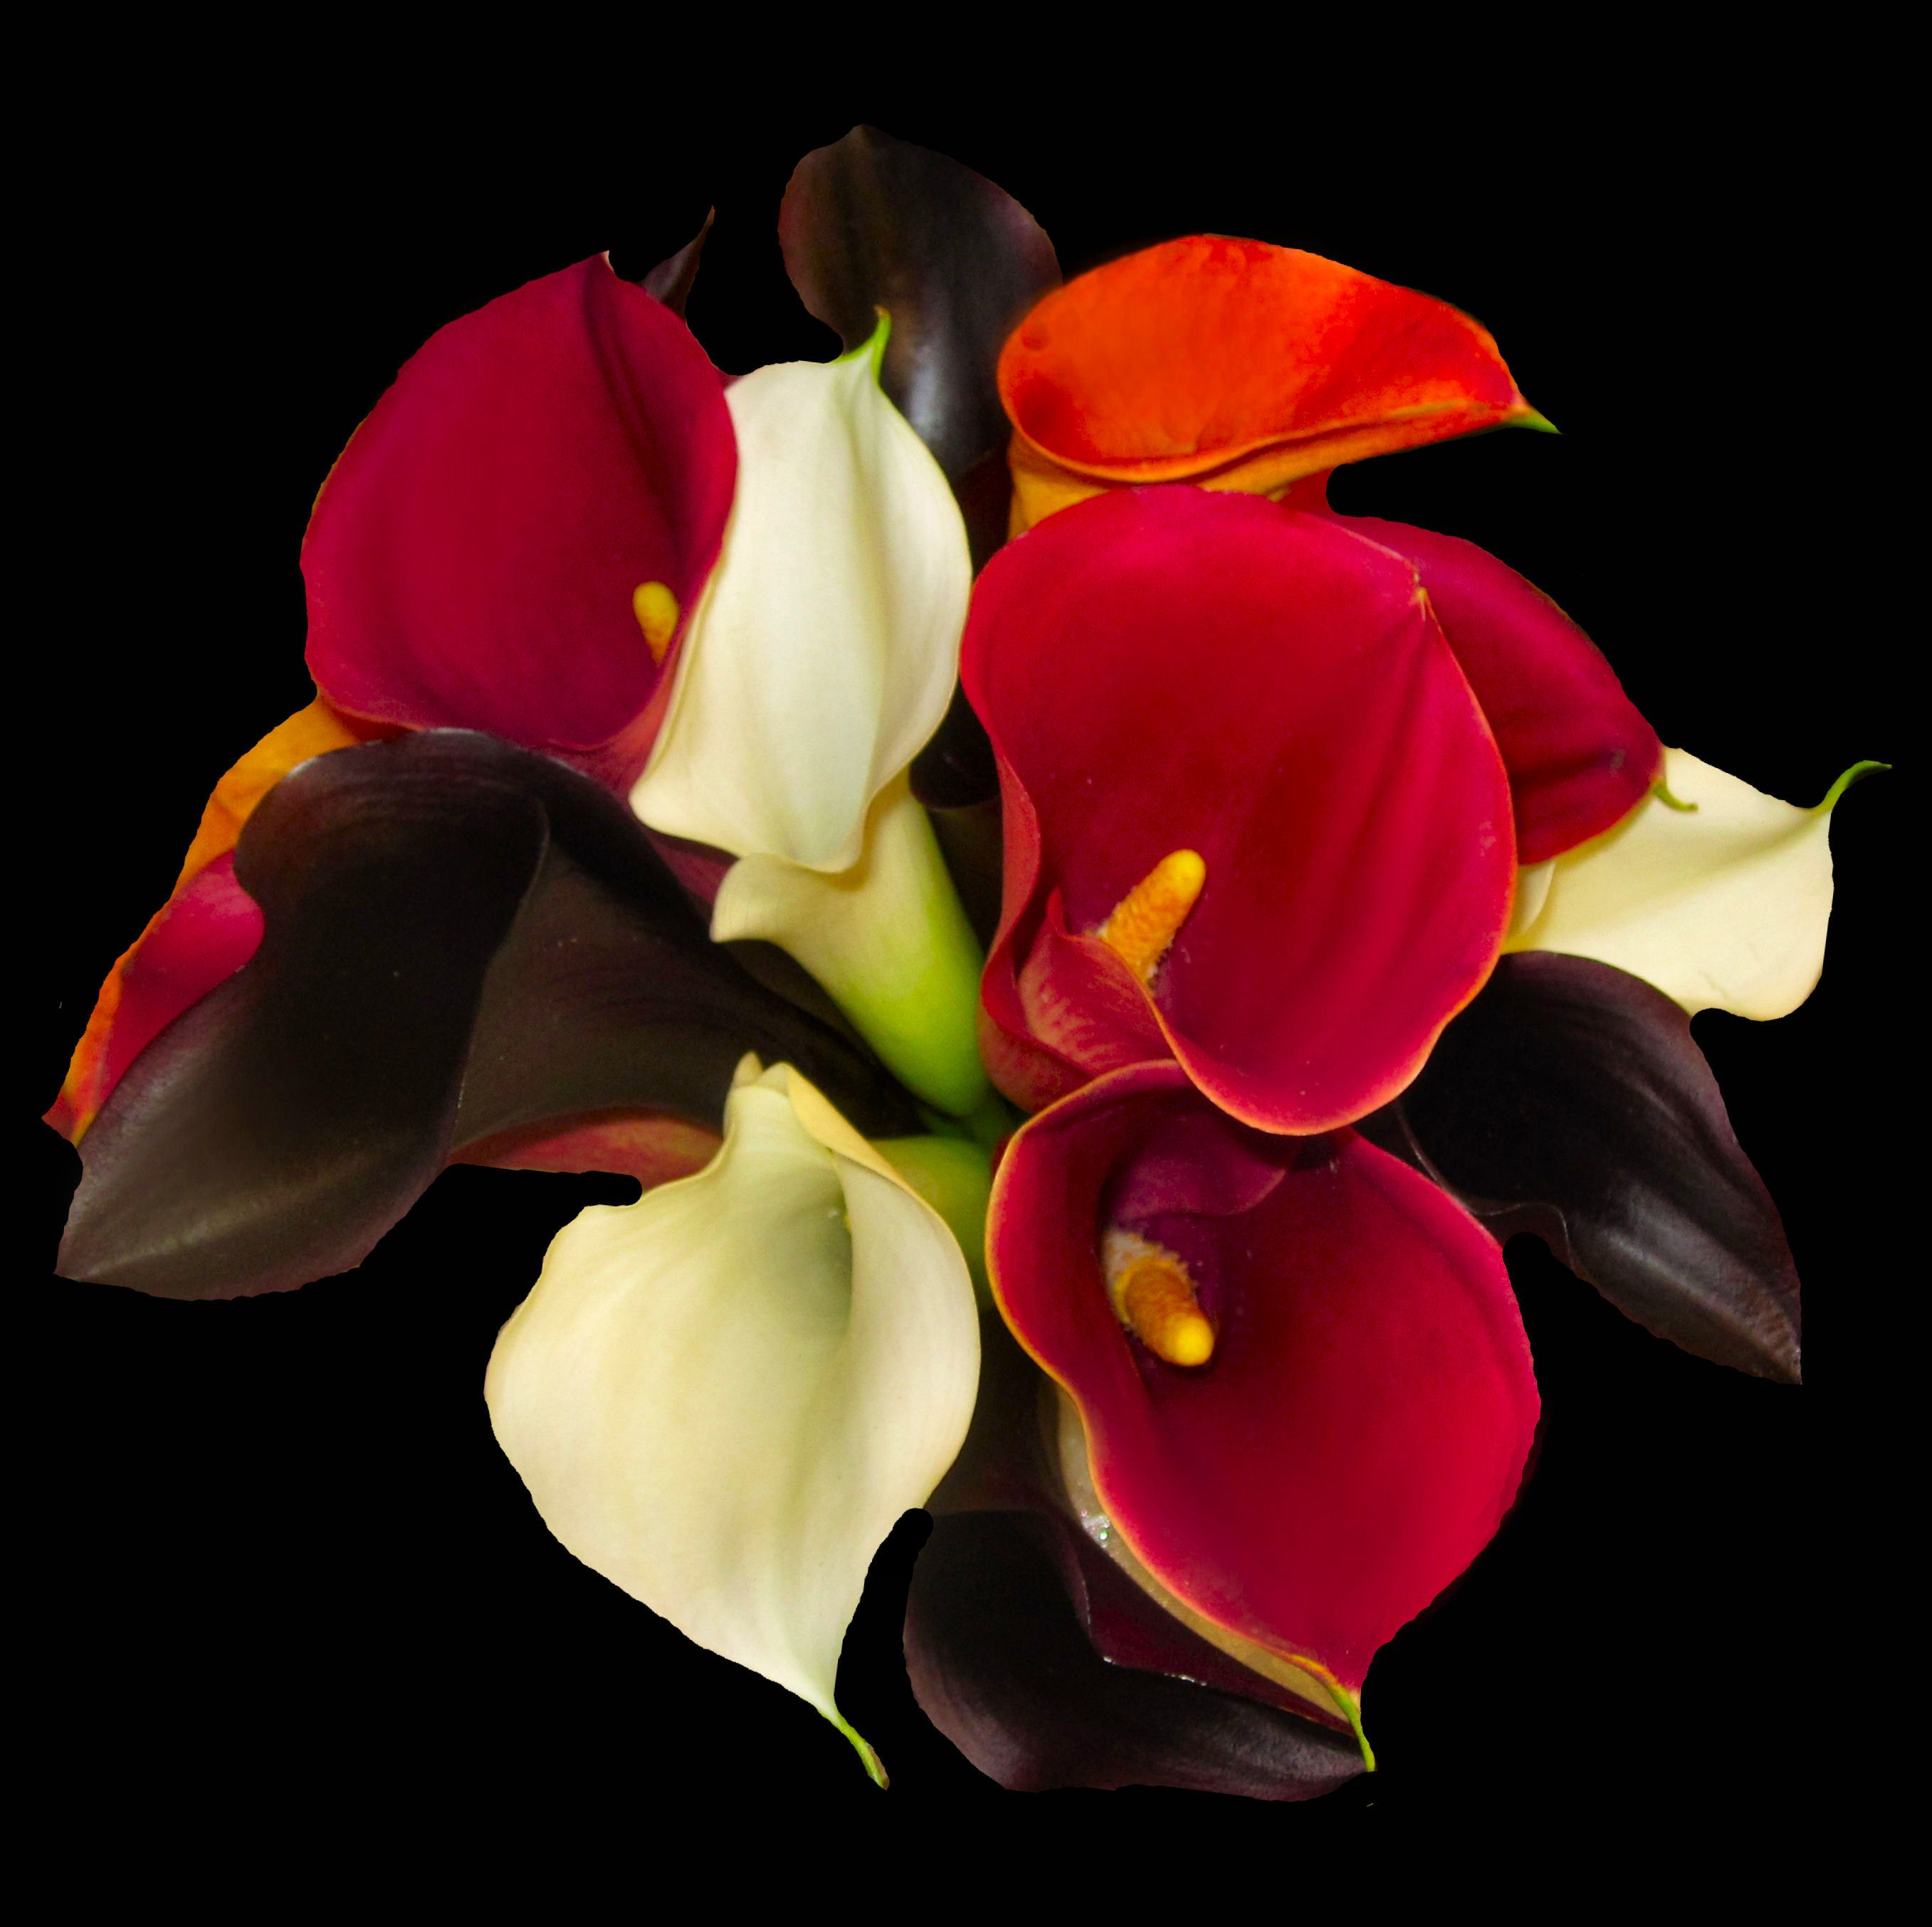 Wedding Bouquet Or Use The Same Flowers For A Christmas